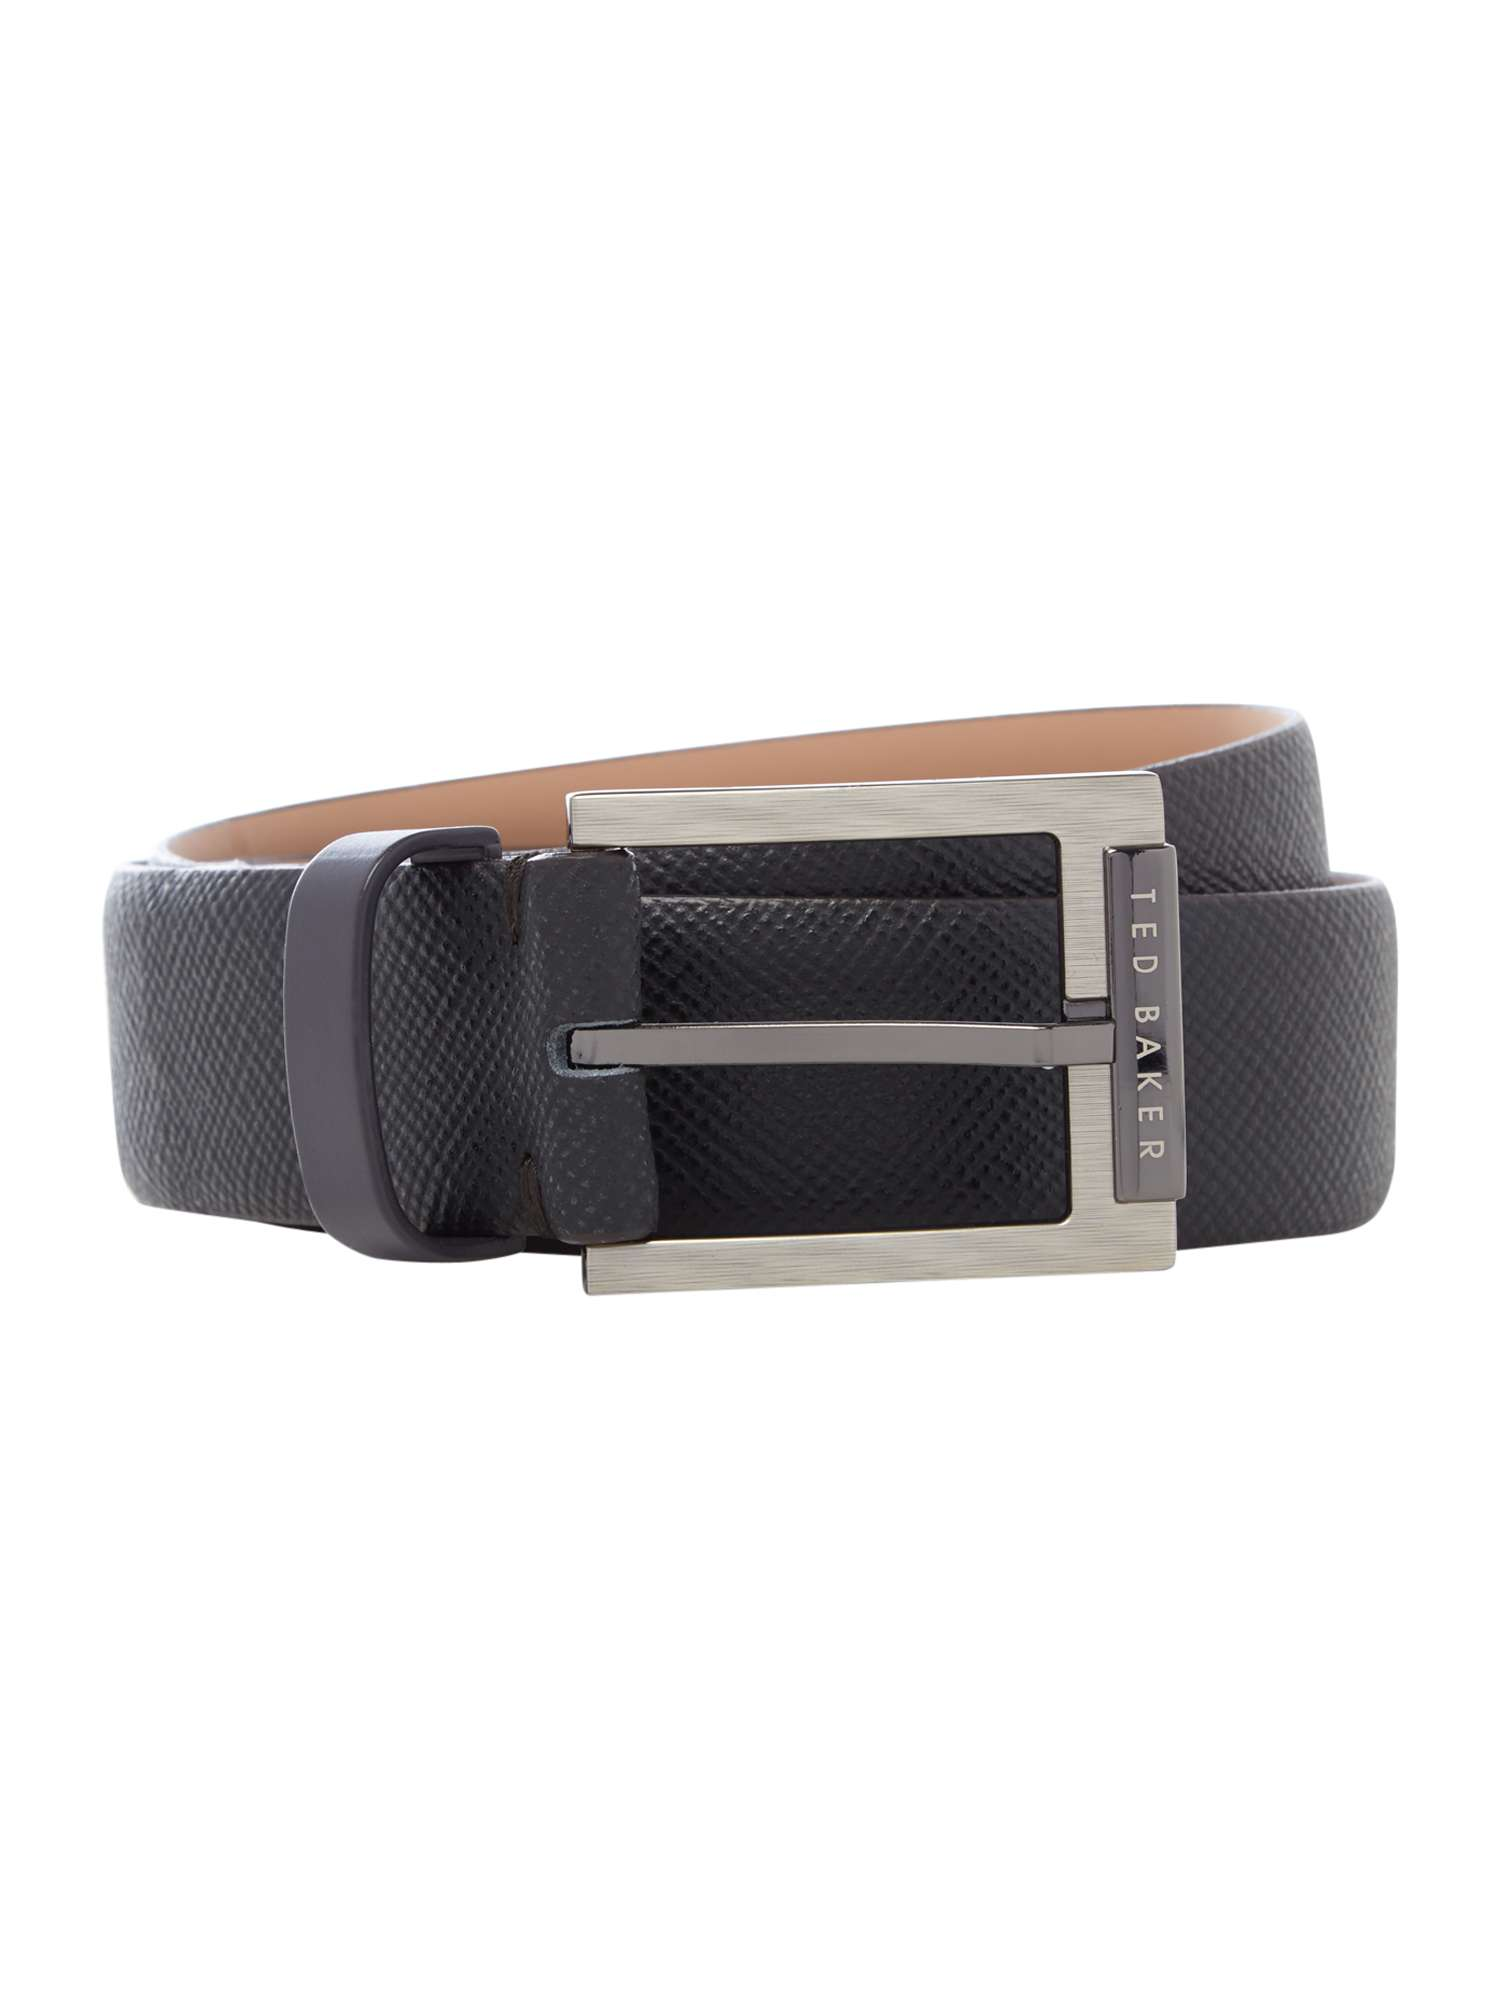 Ted Baker Parmer Textured Grain Belt £41.25